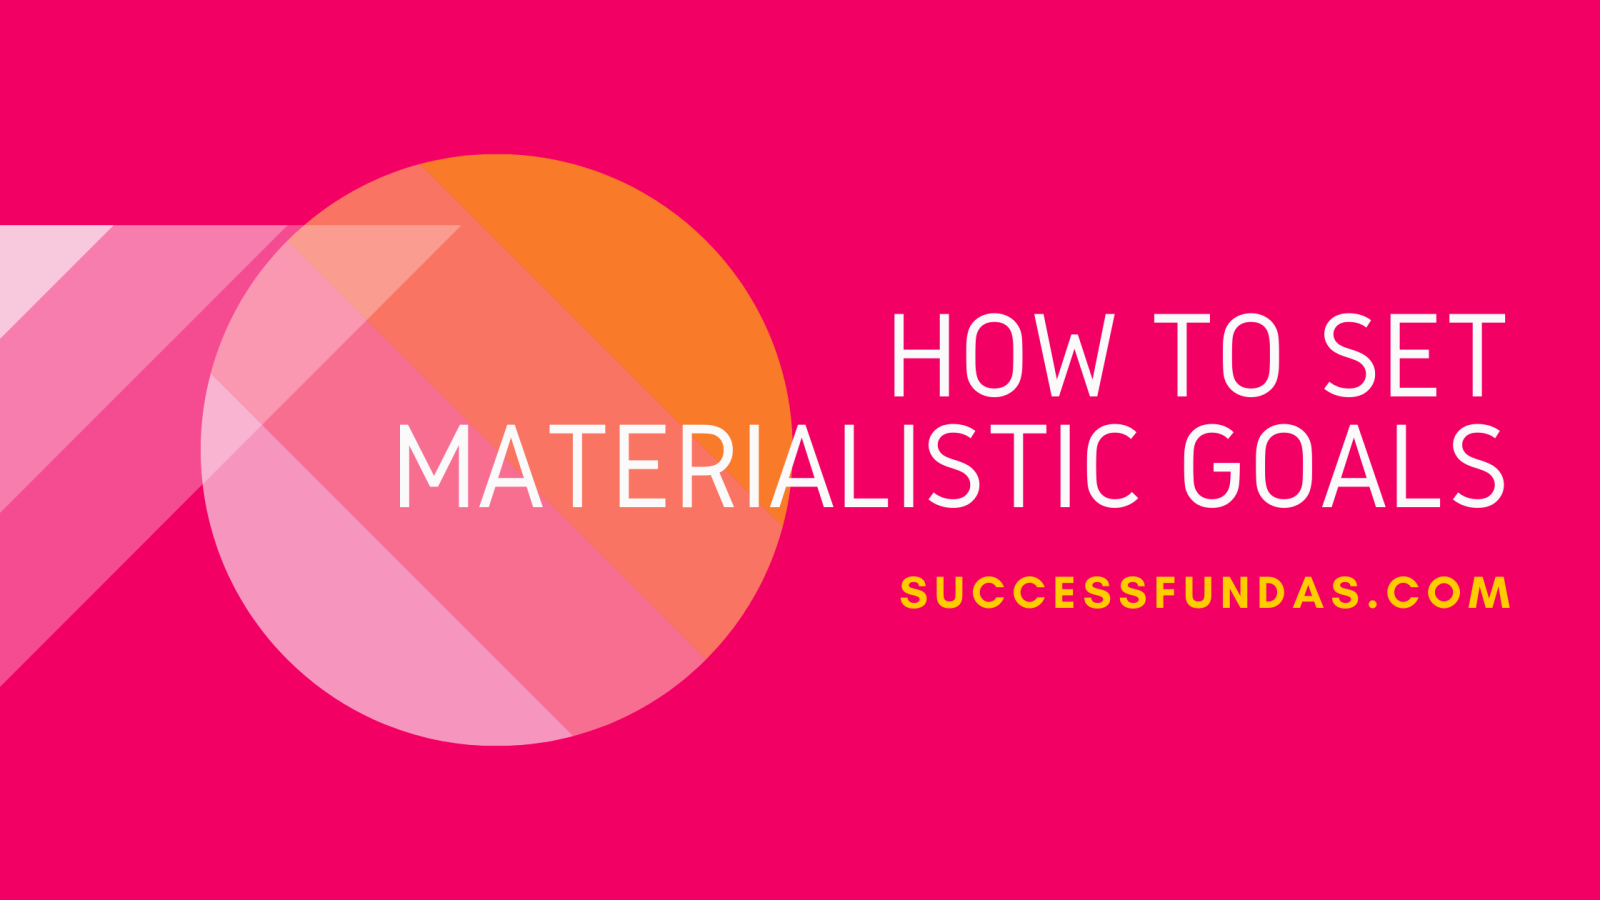 How to set materialistic goals